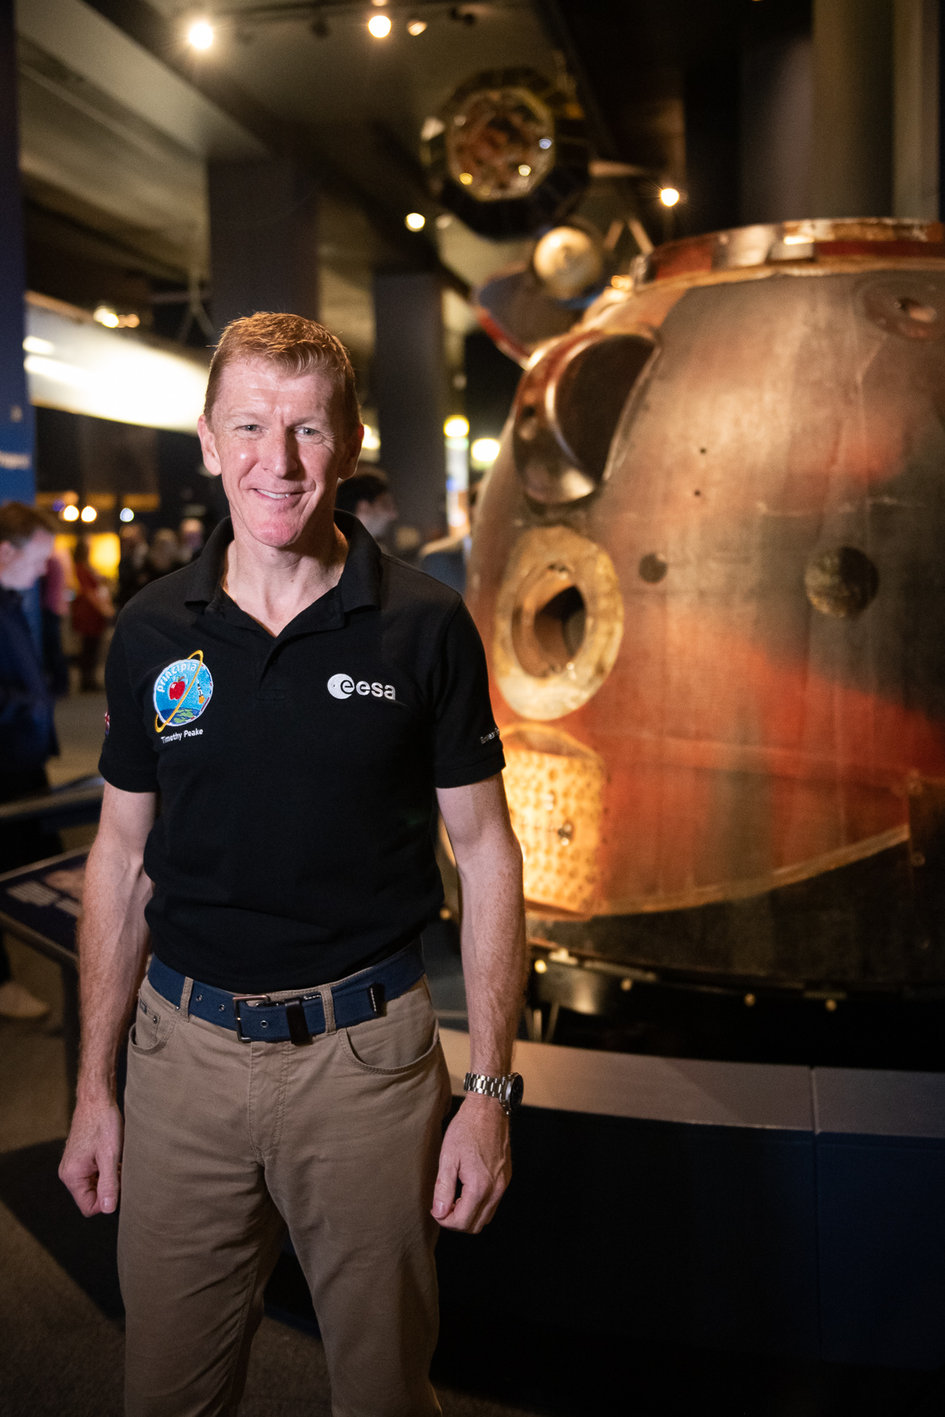 Tim Peake with the Soyuz descent module at the Science Museum in London